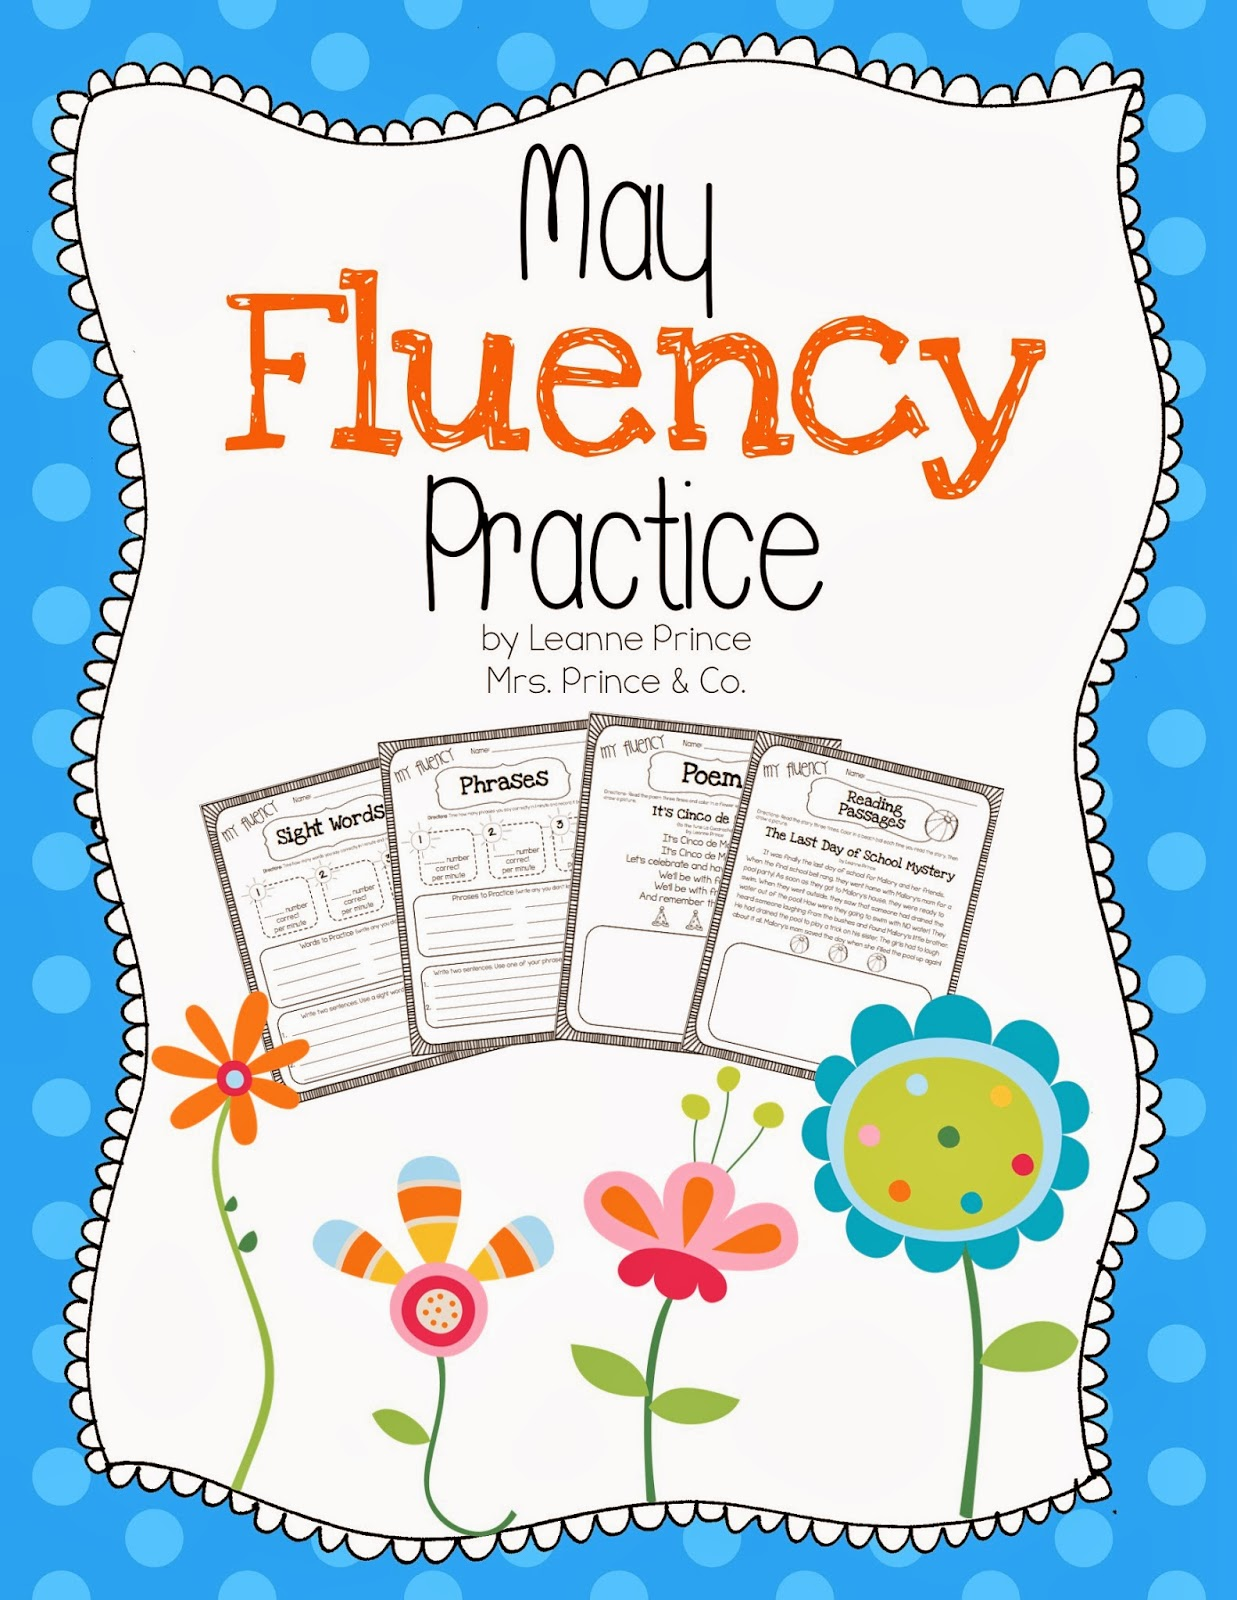 http://www.teacherspayteachers.com/Product/May-Fluency-Practice-686797